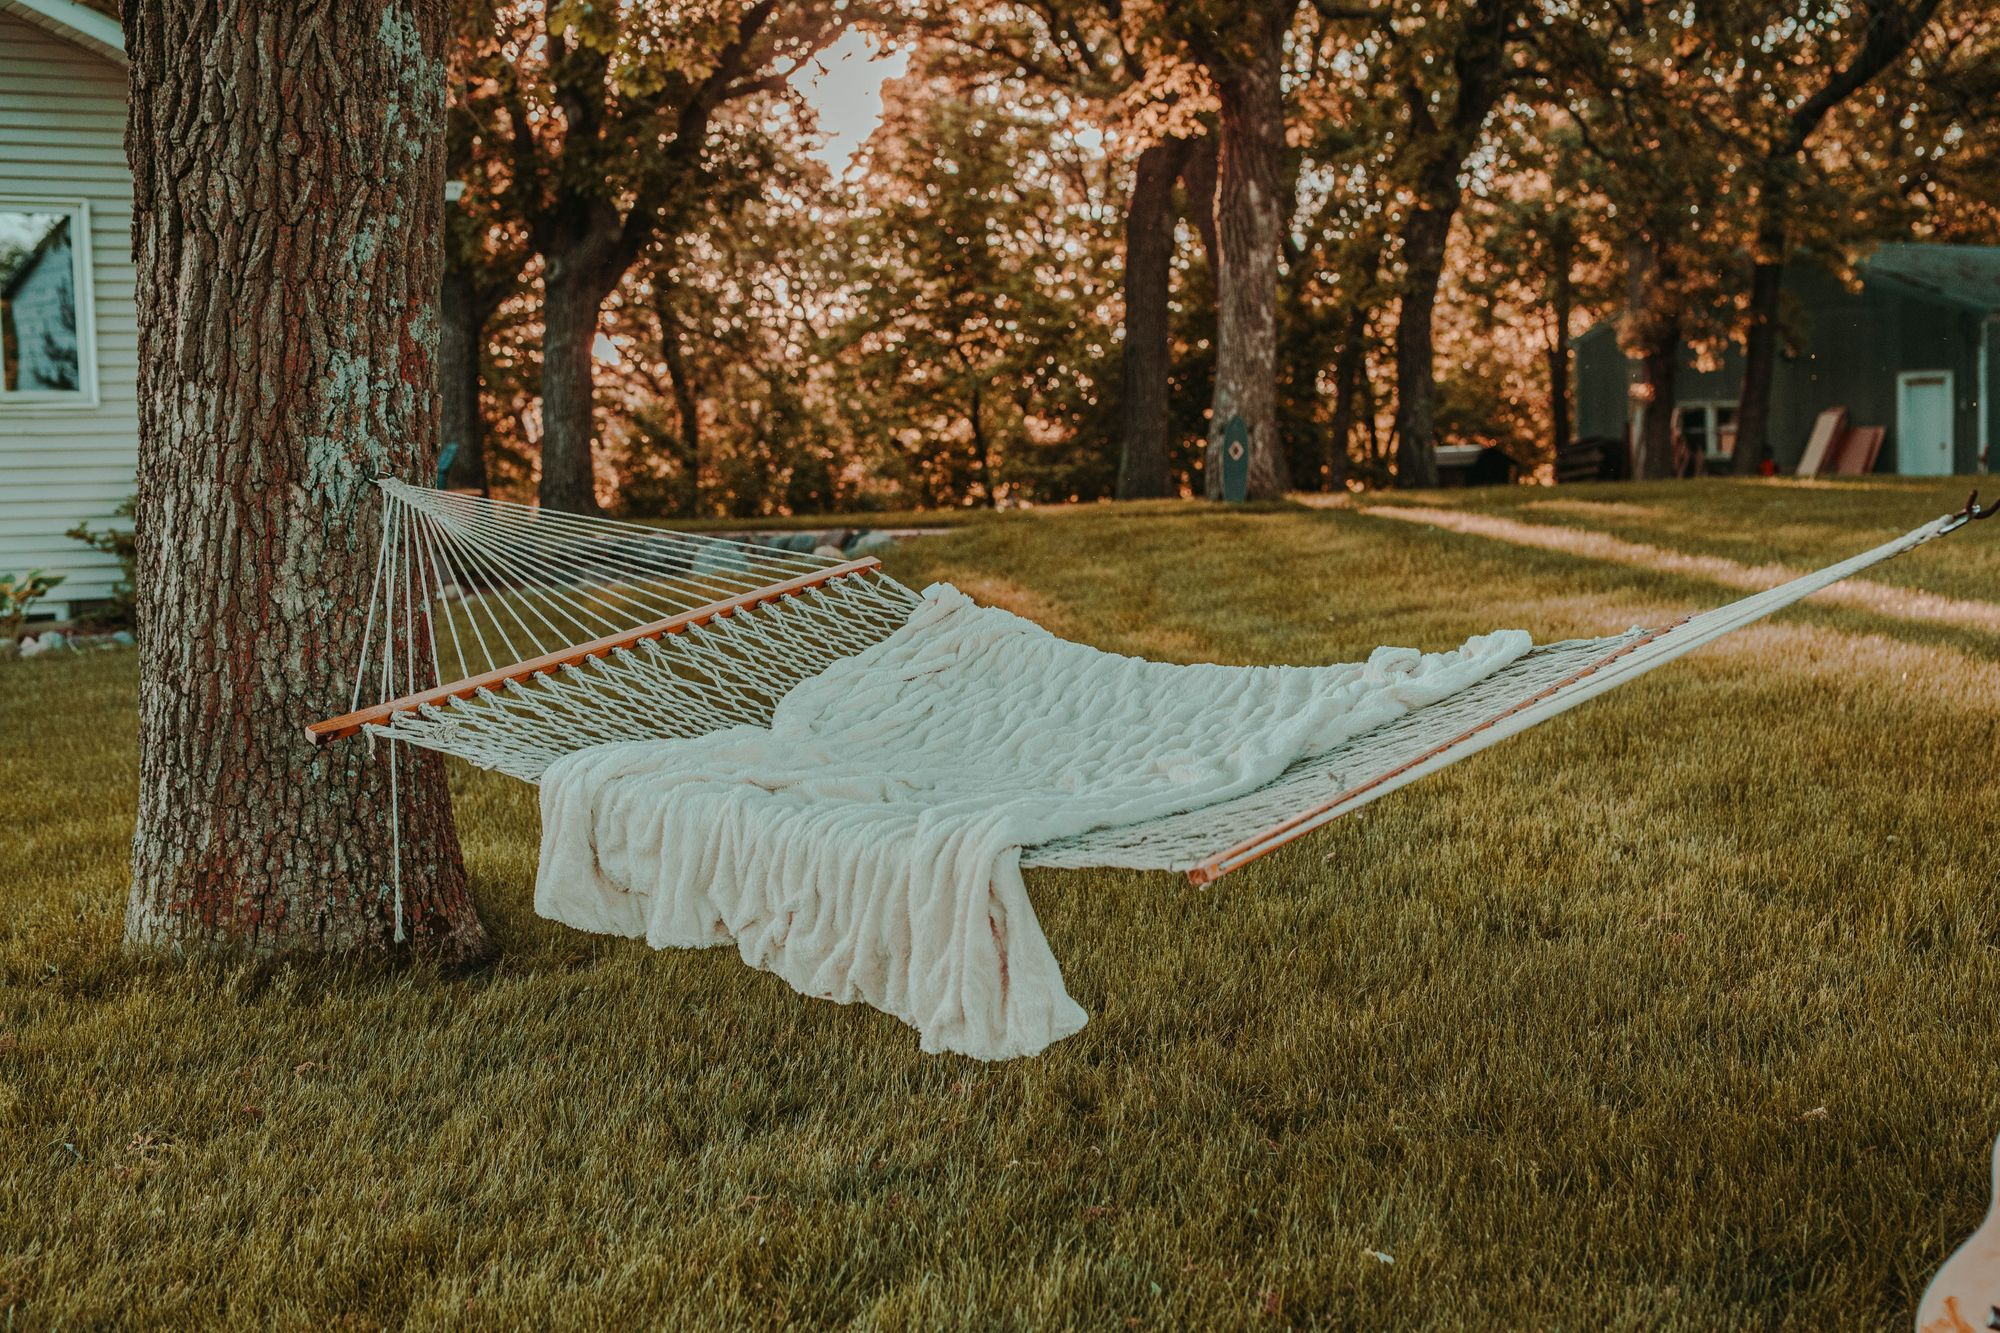 The Ty-rade: Our campus has an alarming lack of hammocks